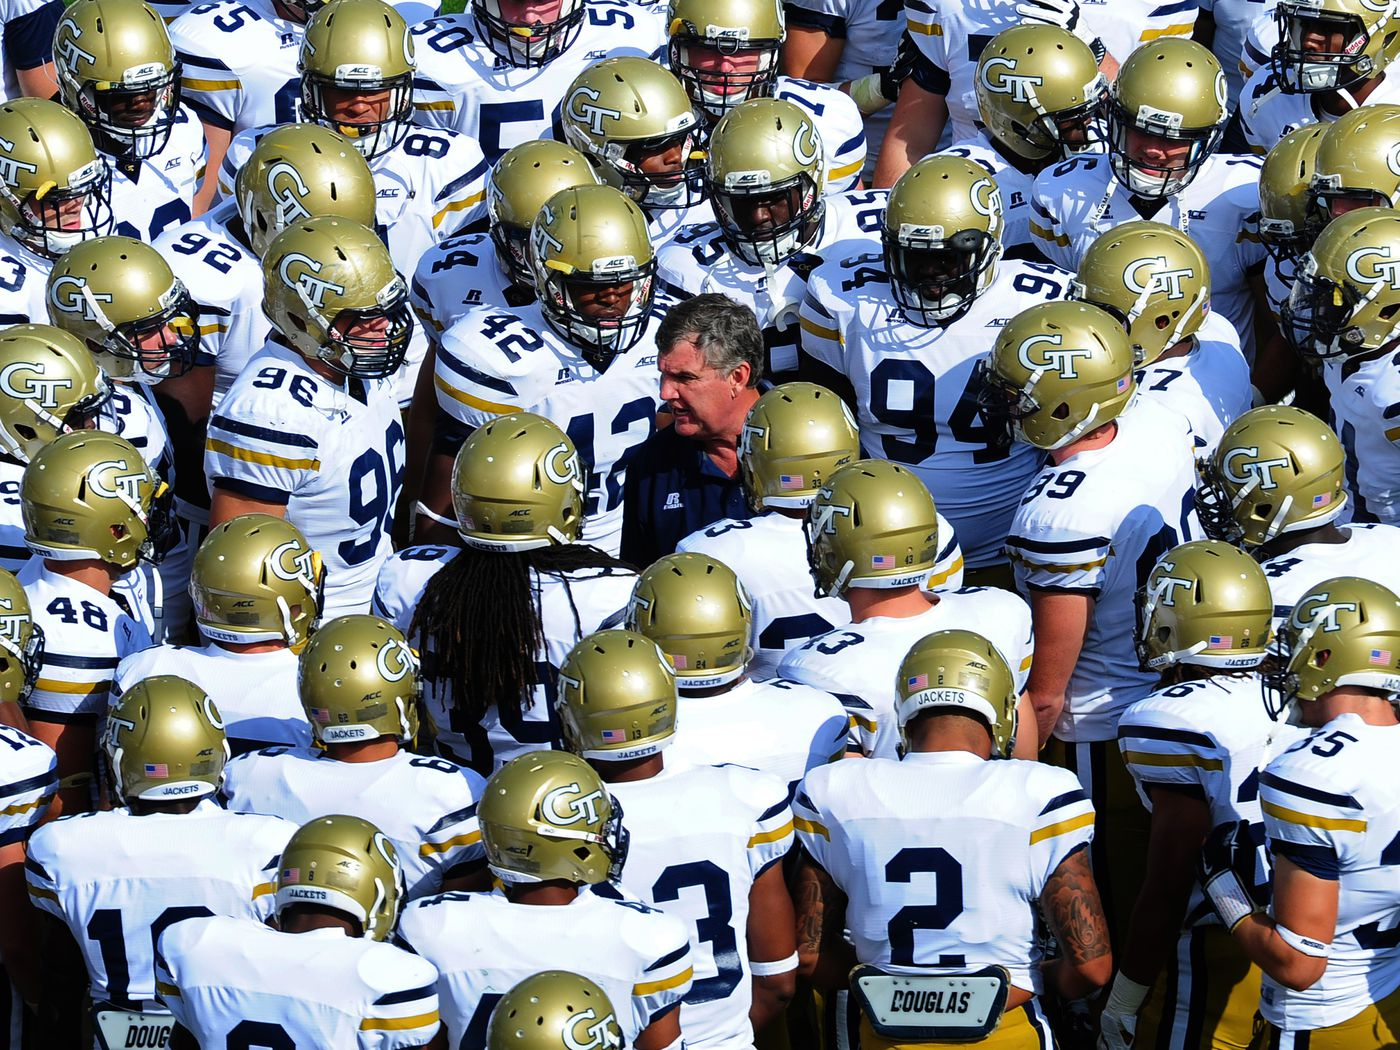 Georgia Tech Football Vs Unc 2014 How To Watch Online Tv Schedule Betting Odds More From The Rumble Seat